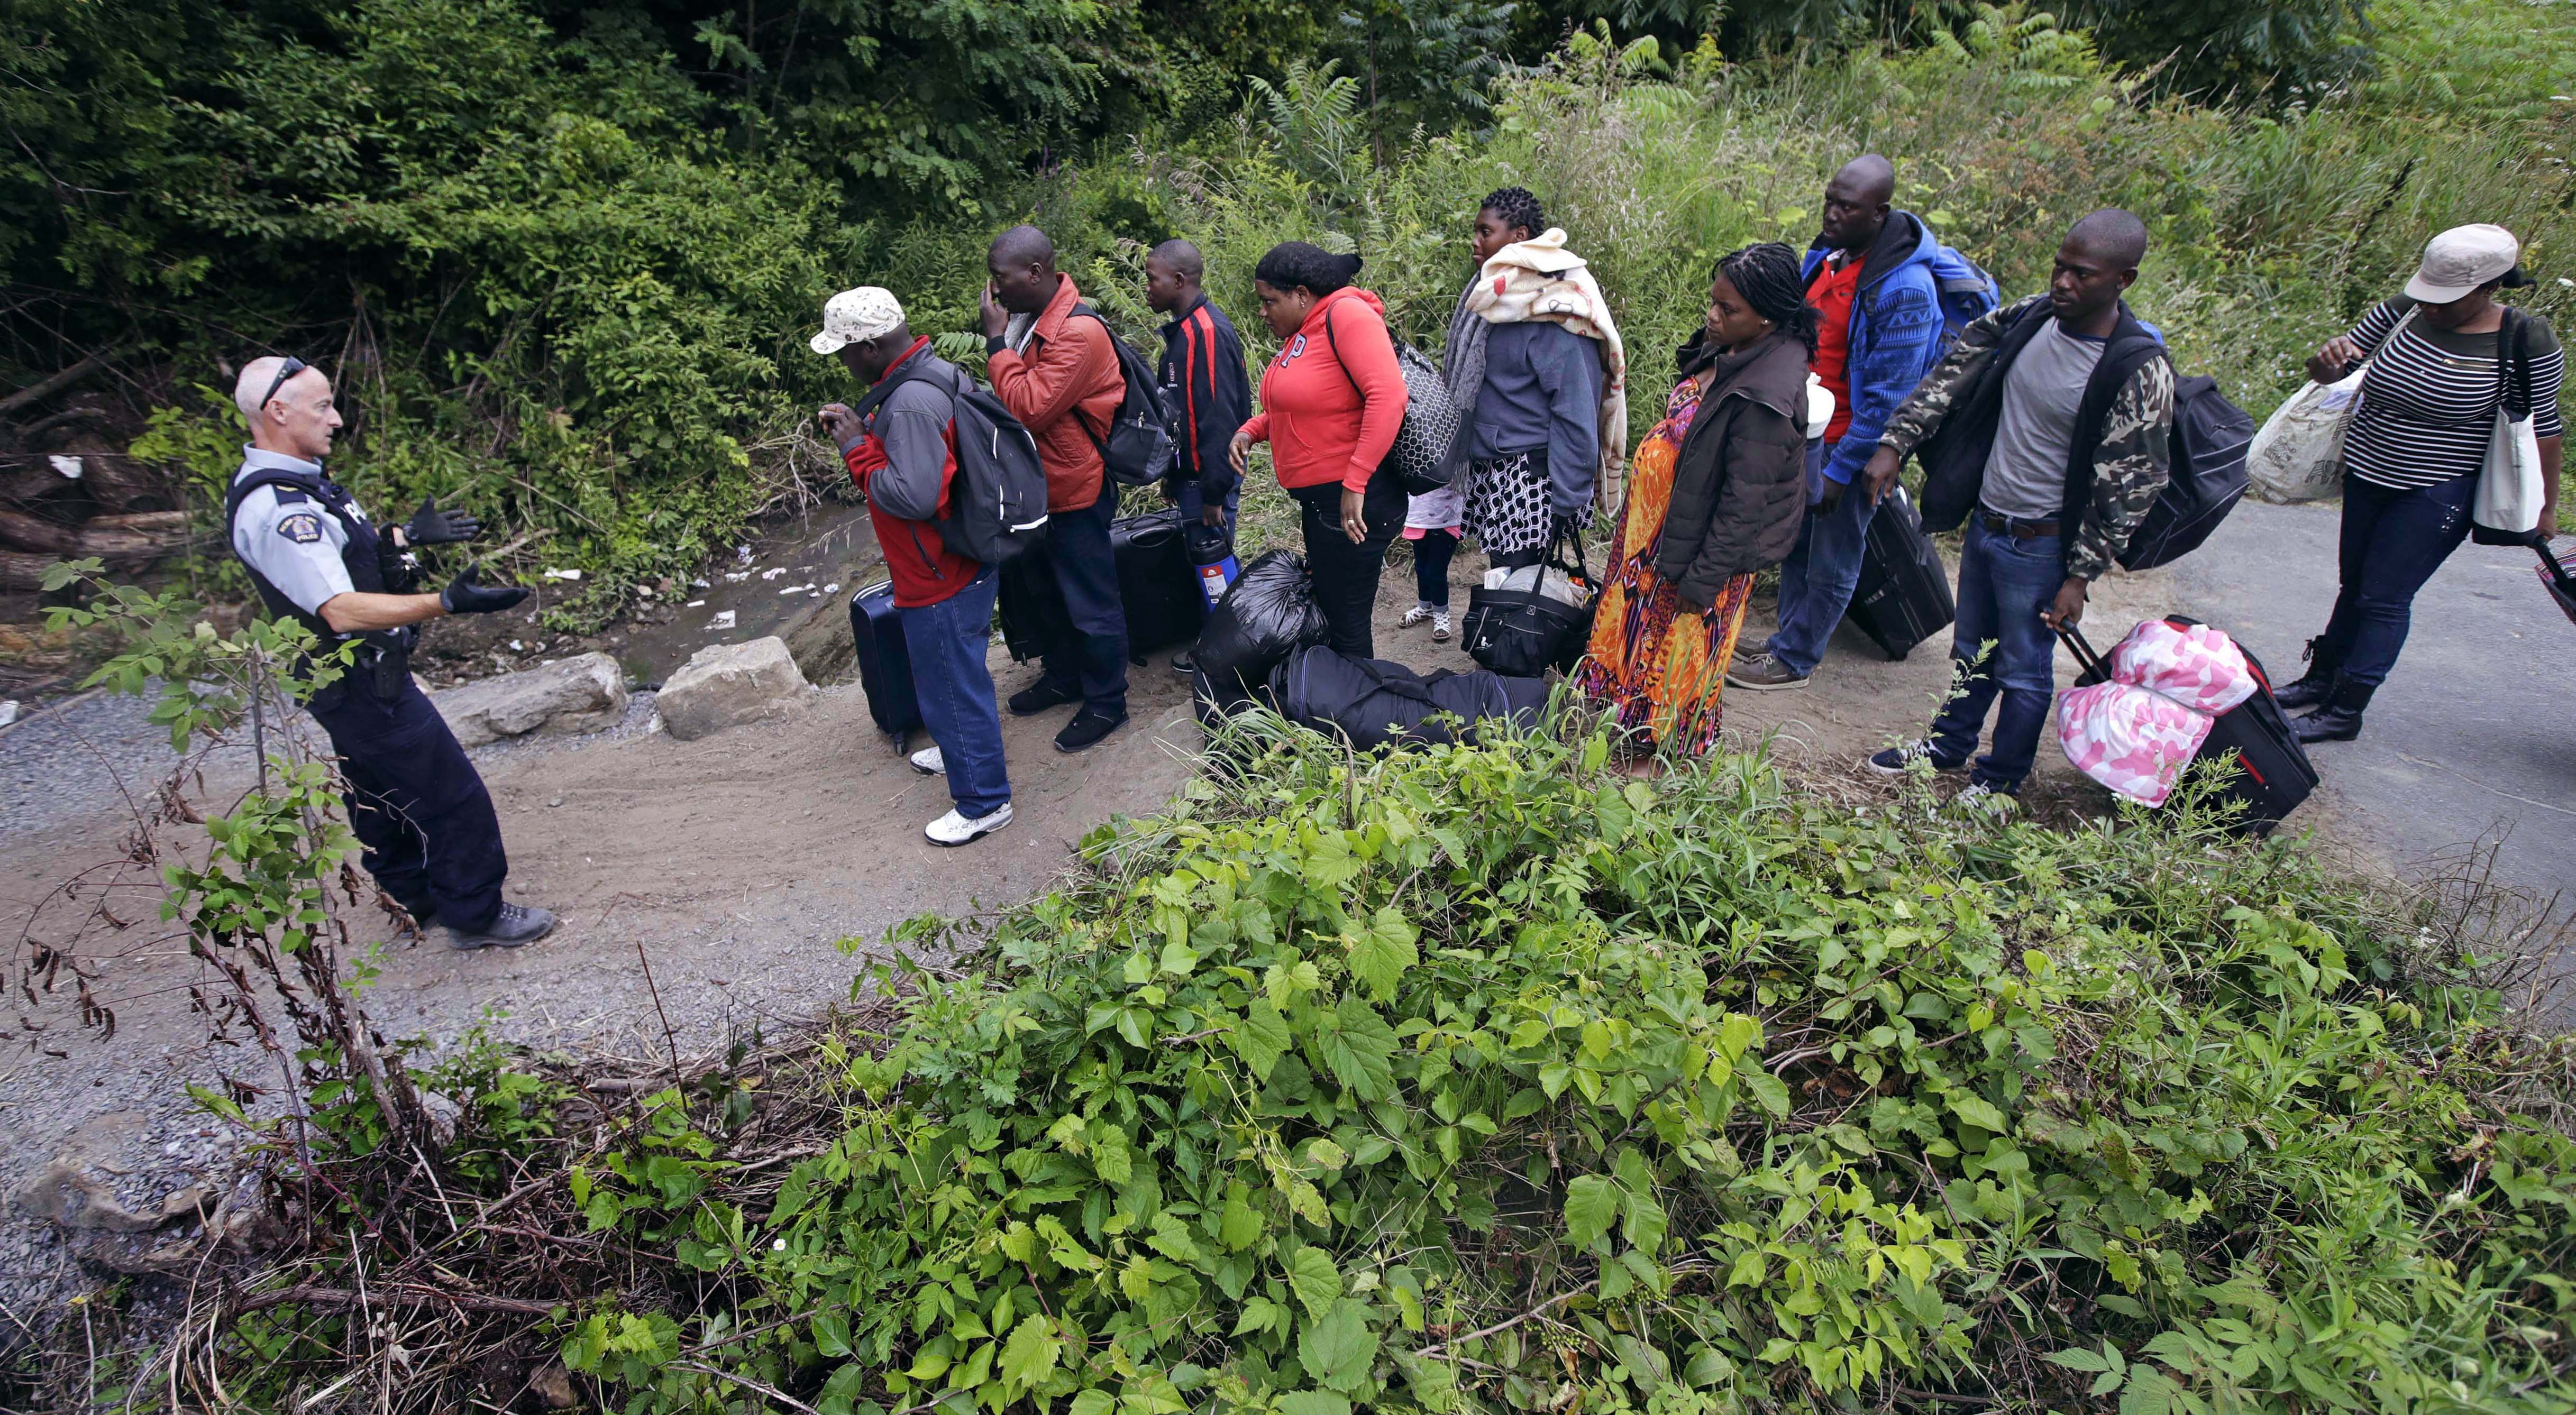 Nigerian asylum seekers cross to Canada from USA